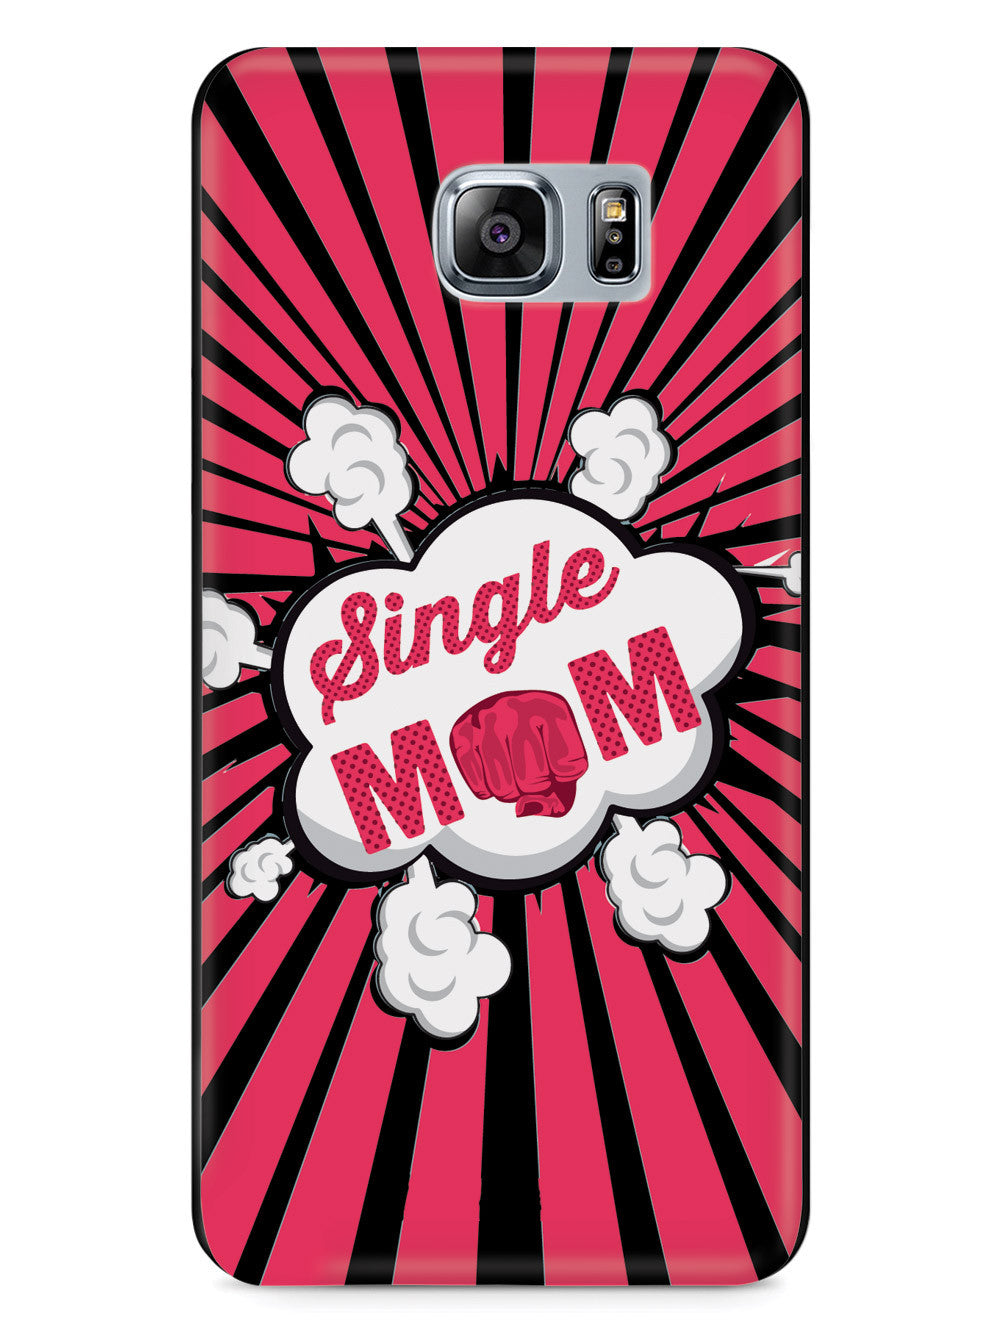 Single Moms Rock Mother's Case